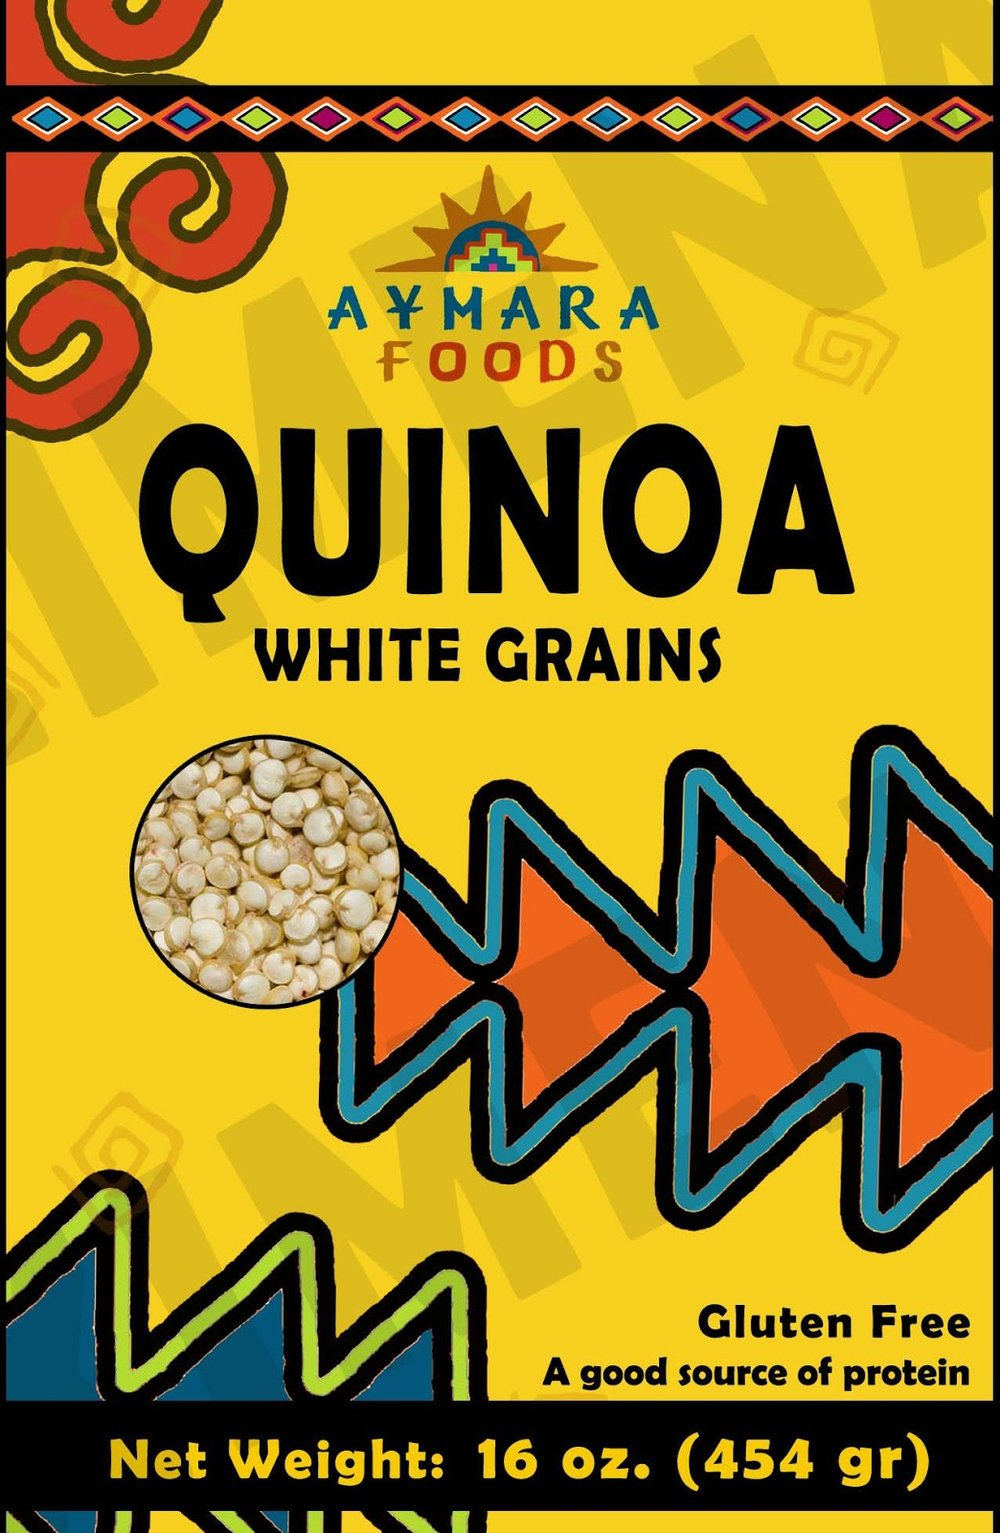 Quinoa Packaging   Logo and packaging design